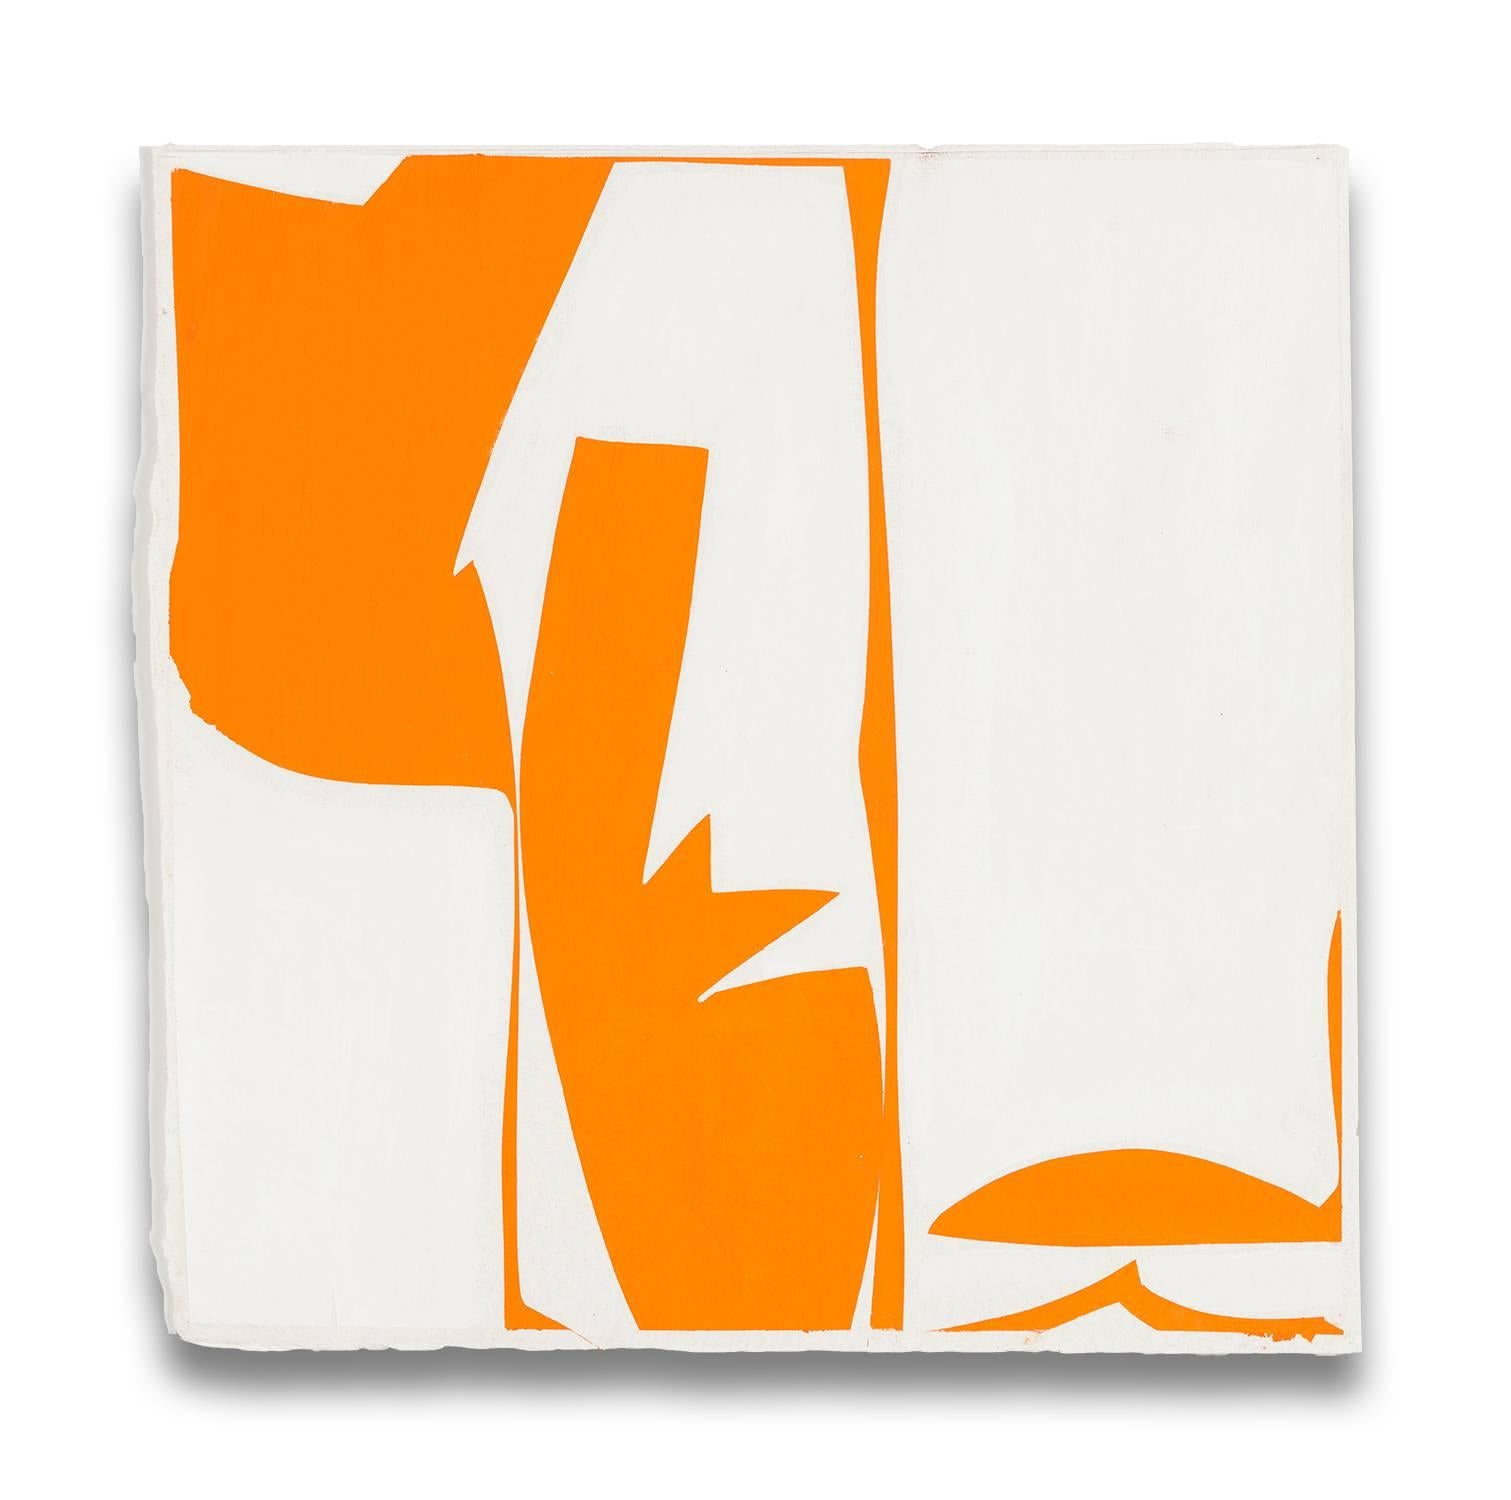 Covers 13 - orange (Abstract painting)